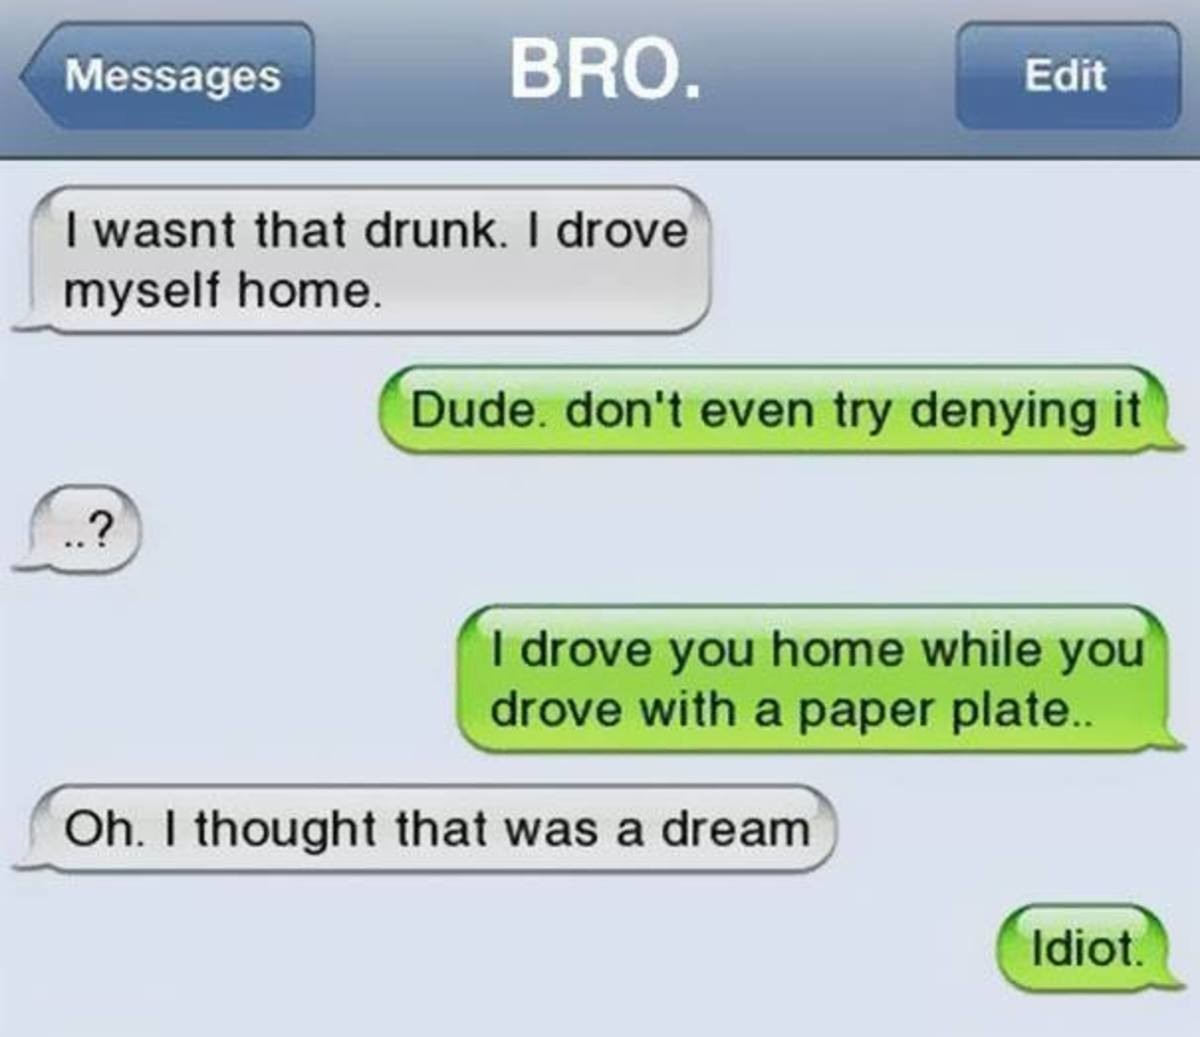 Drunk Texts To Myself. Messages through time. I wasnt that drunk. I drove '5 s myself home. I Dude. don' t even try denying [ill, I drove you home whiny l I dro